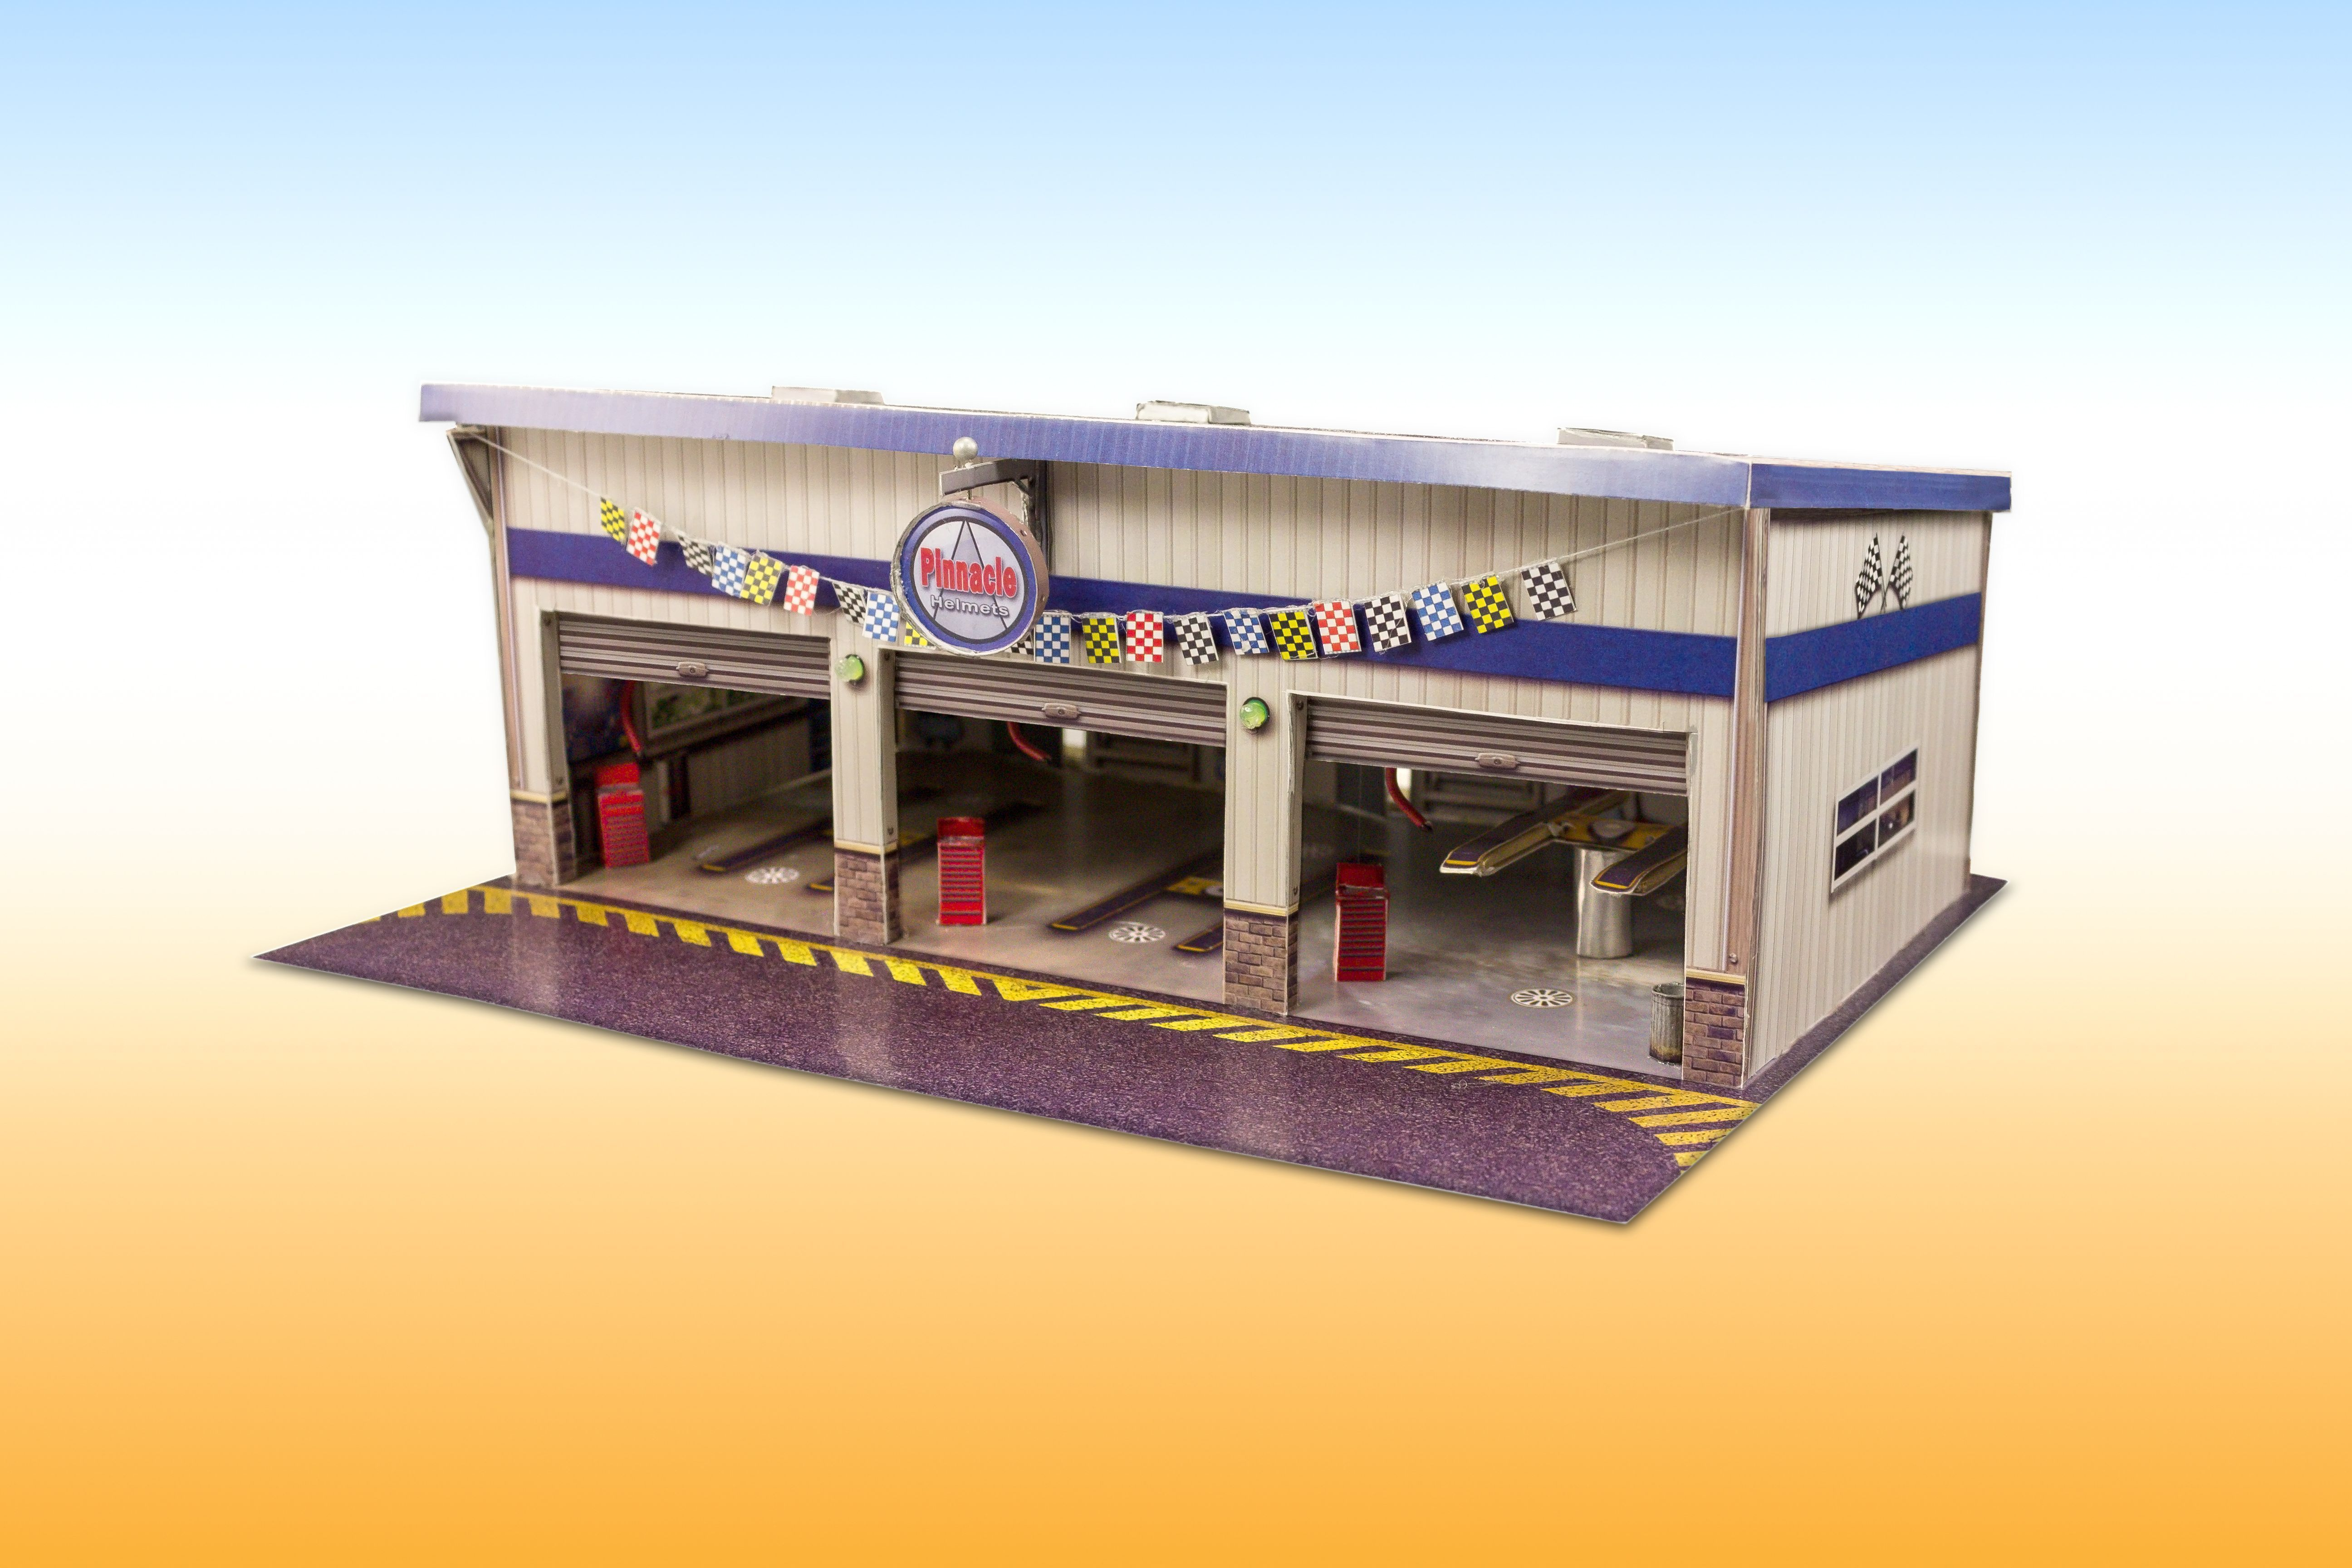 New Pit Stop Garage Photo Real Scale Building Kit Is A